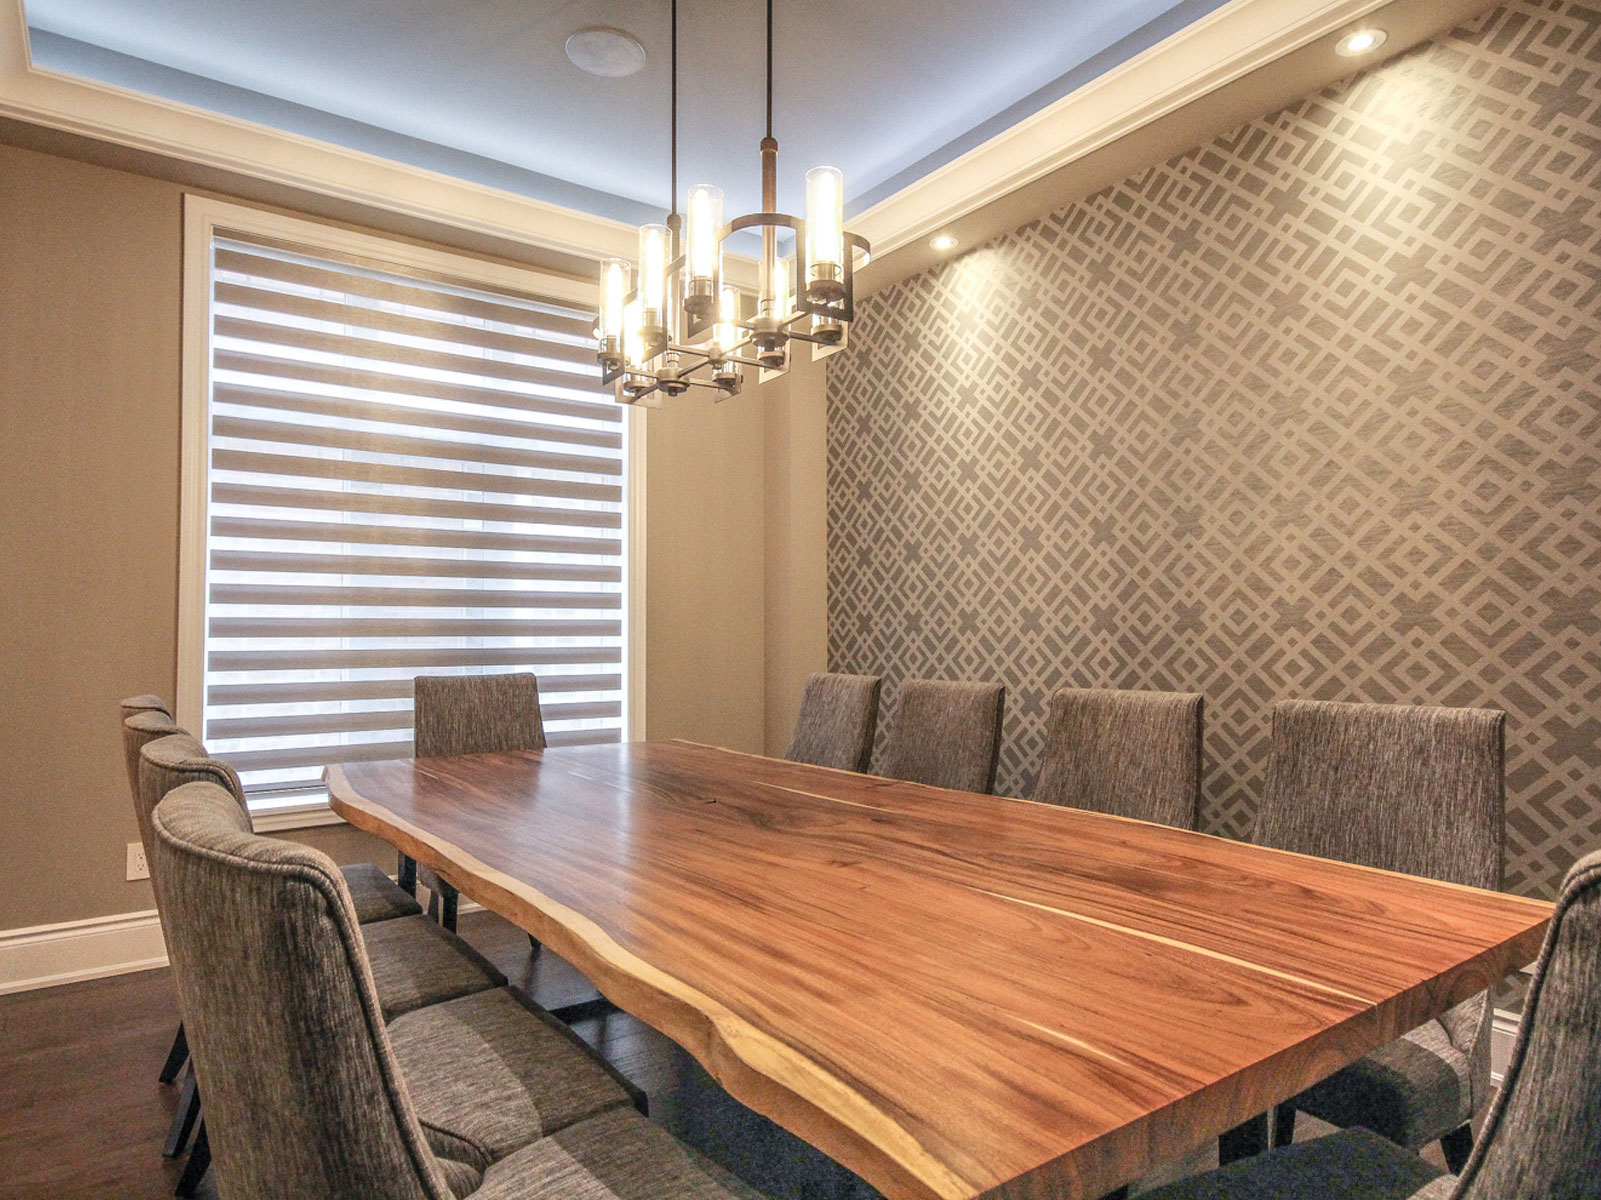 Zebra Shades Window Coverings Canada Roller Blinds